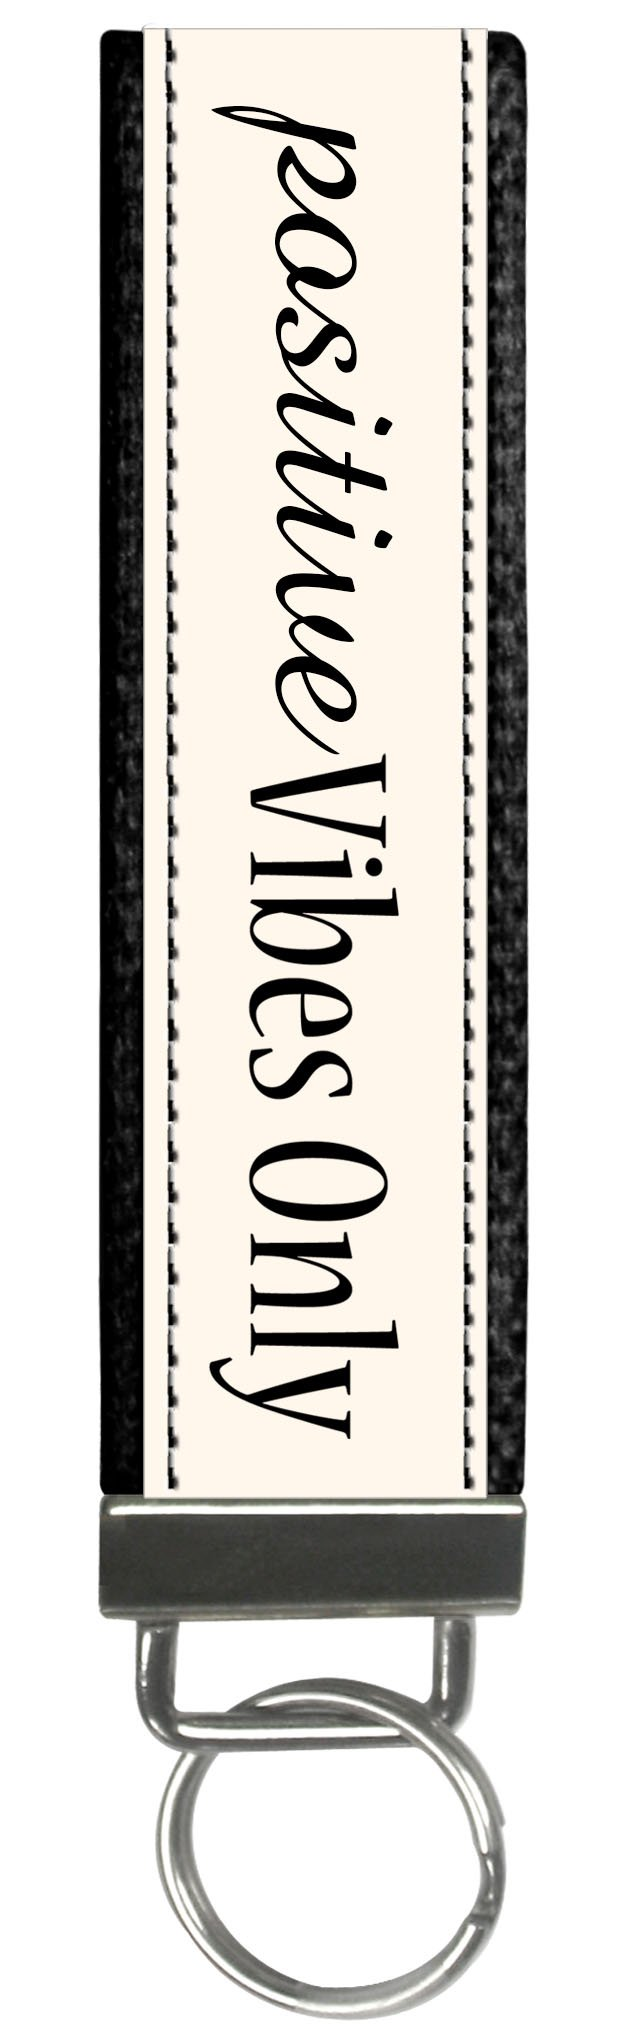 Snaptotes Trendy Motivational Positive Vibes Only Wristlet Keychain by Snaptotes (Image #1)